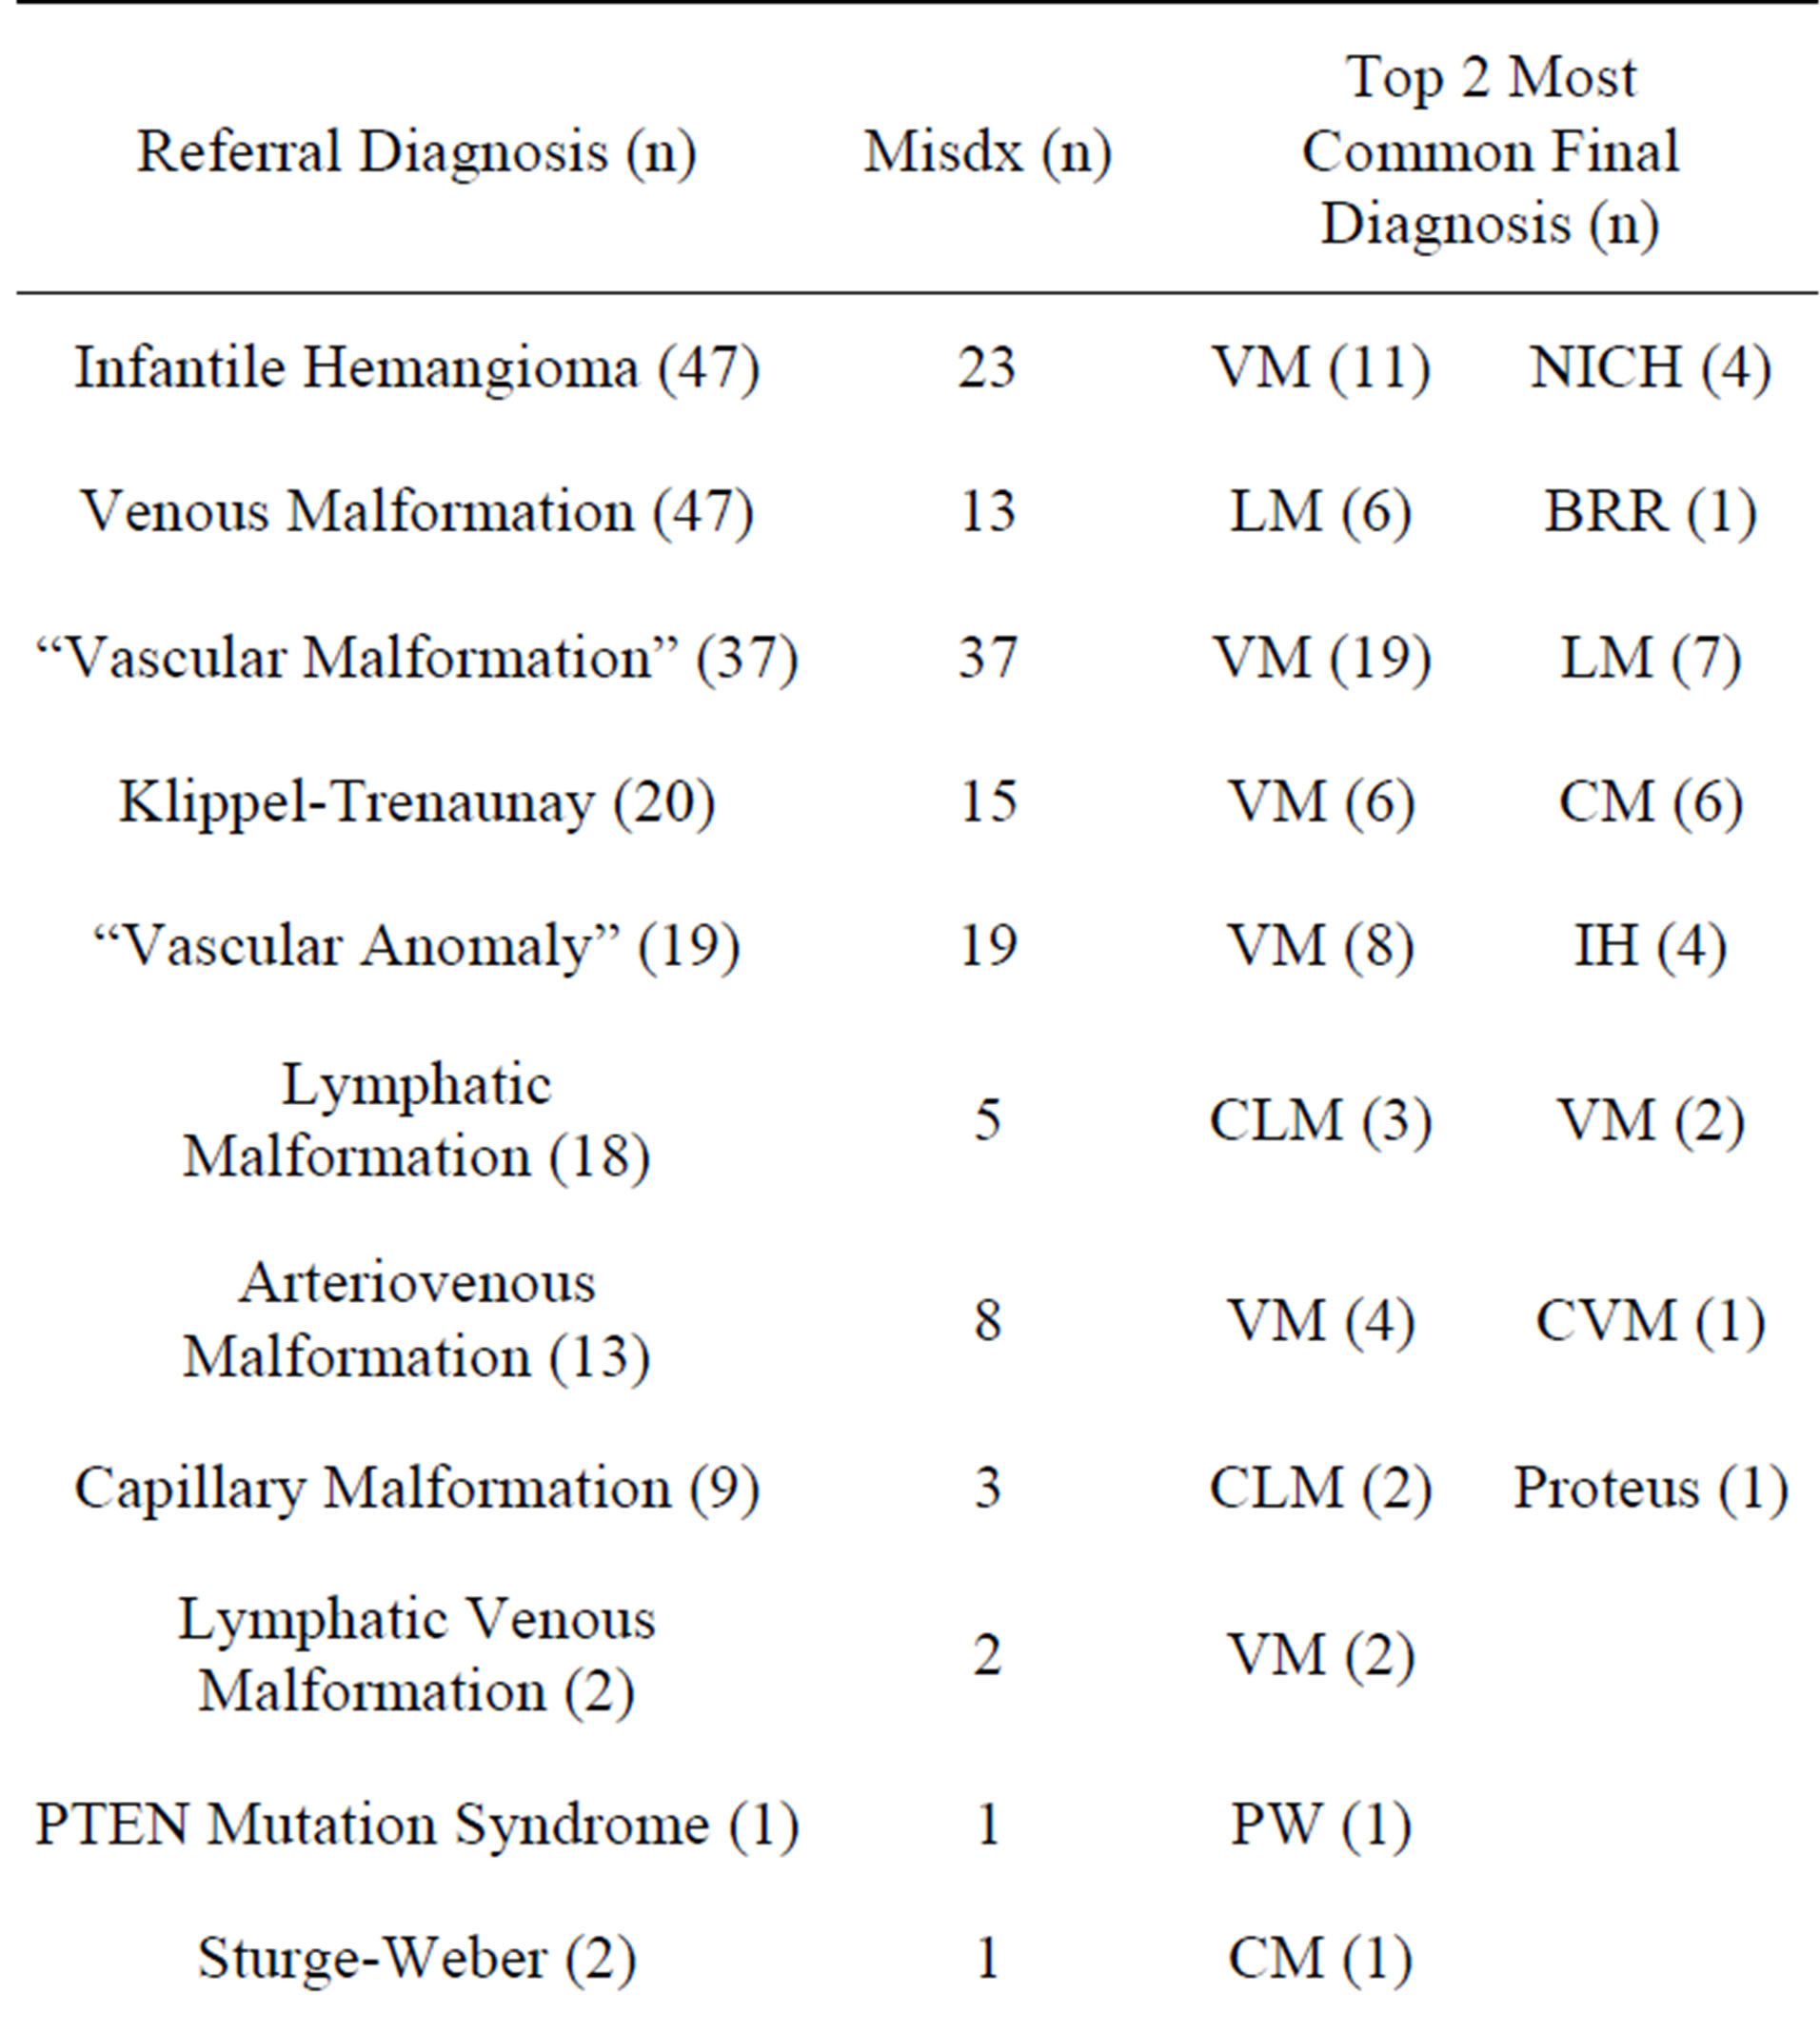 Room for improvement: Patterns of referral misdiagnosis to a